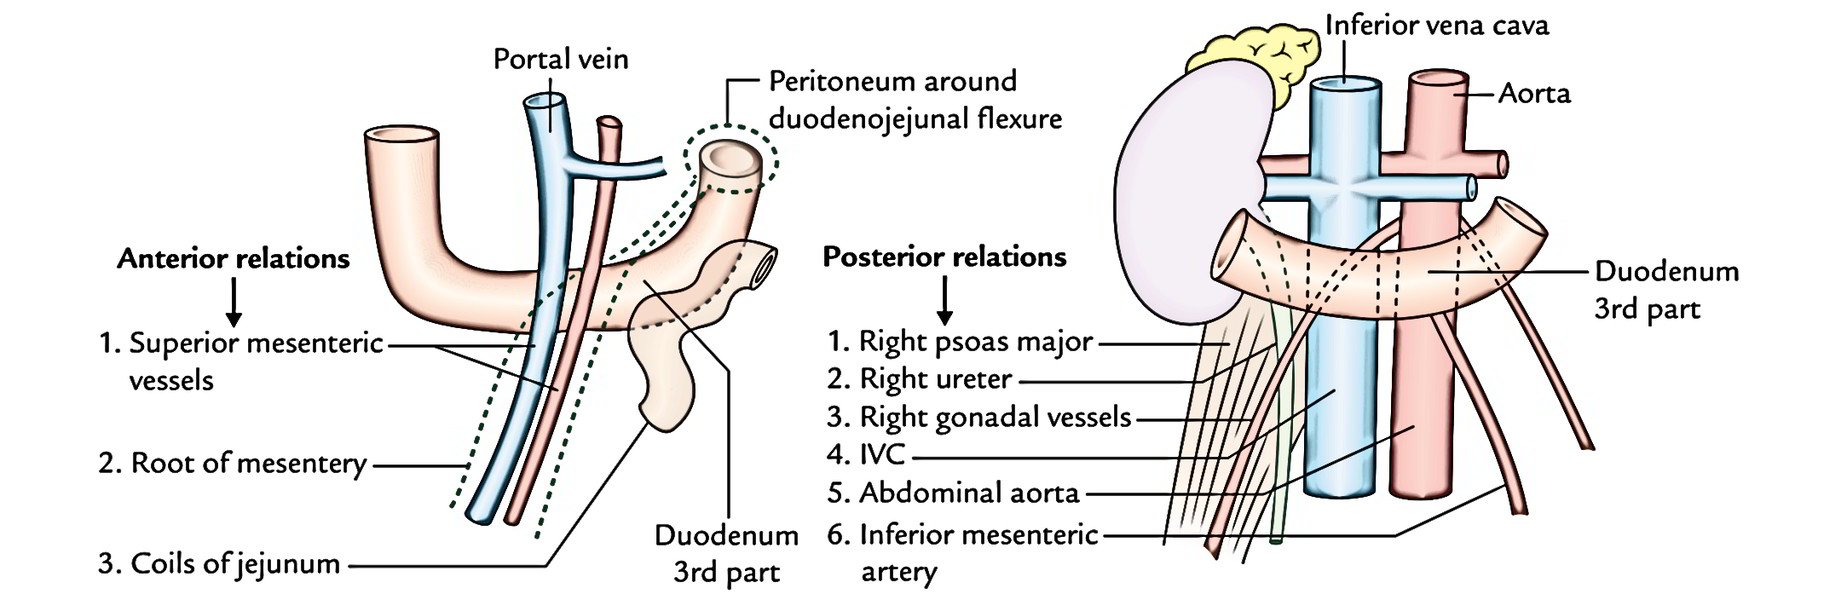 Easy Notes On 【Duodenum】Learn in Just 4 Minutes!